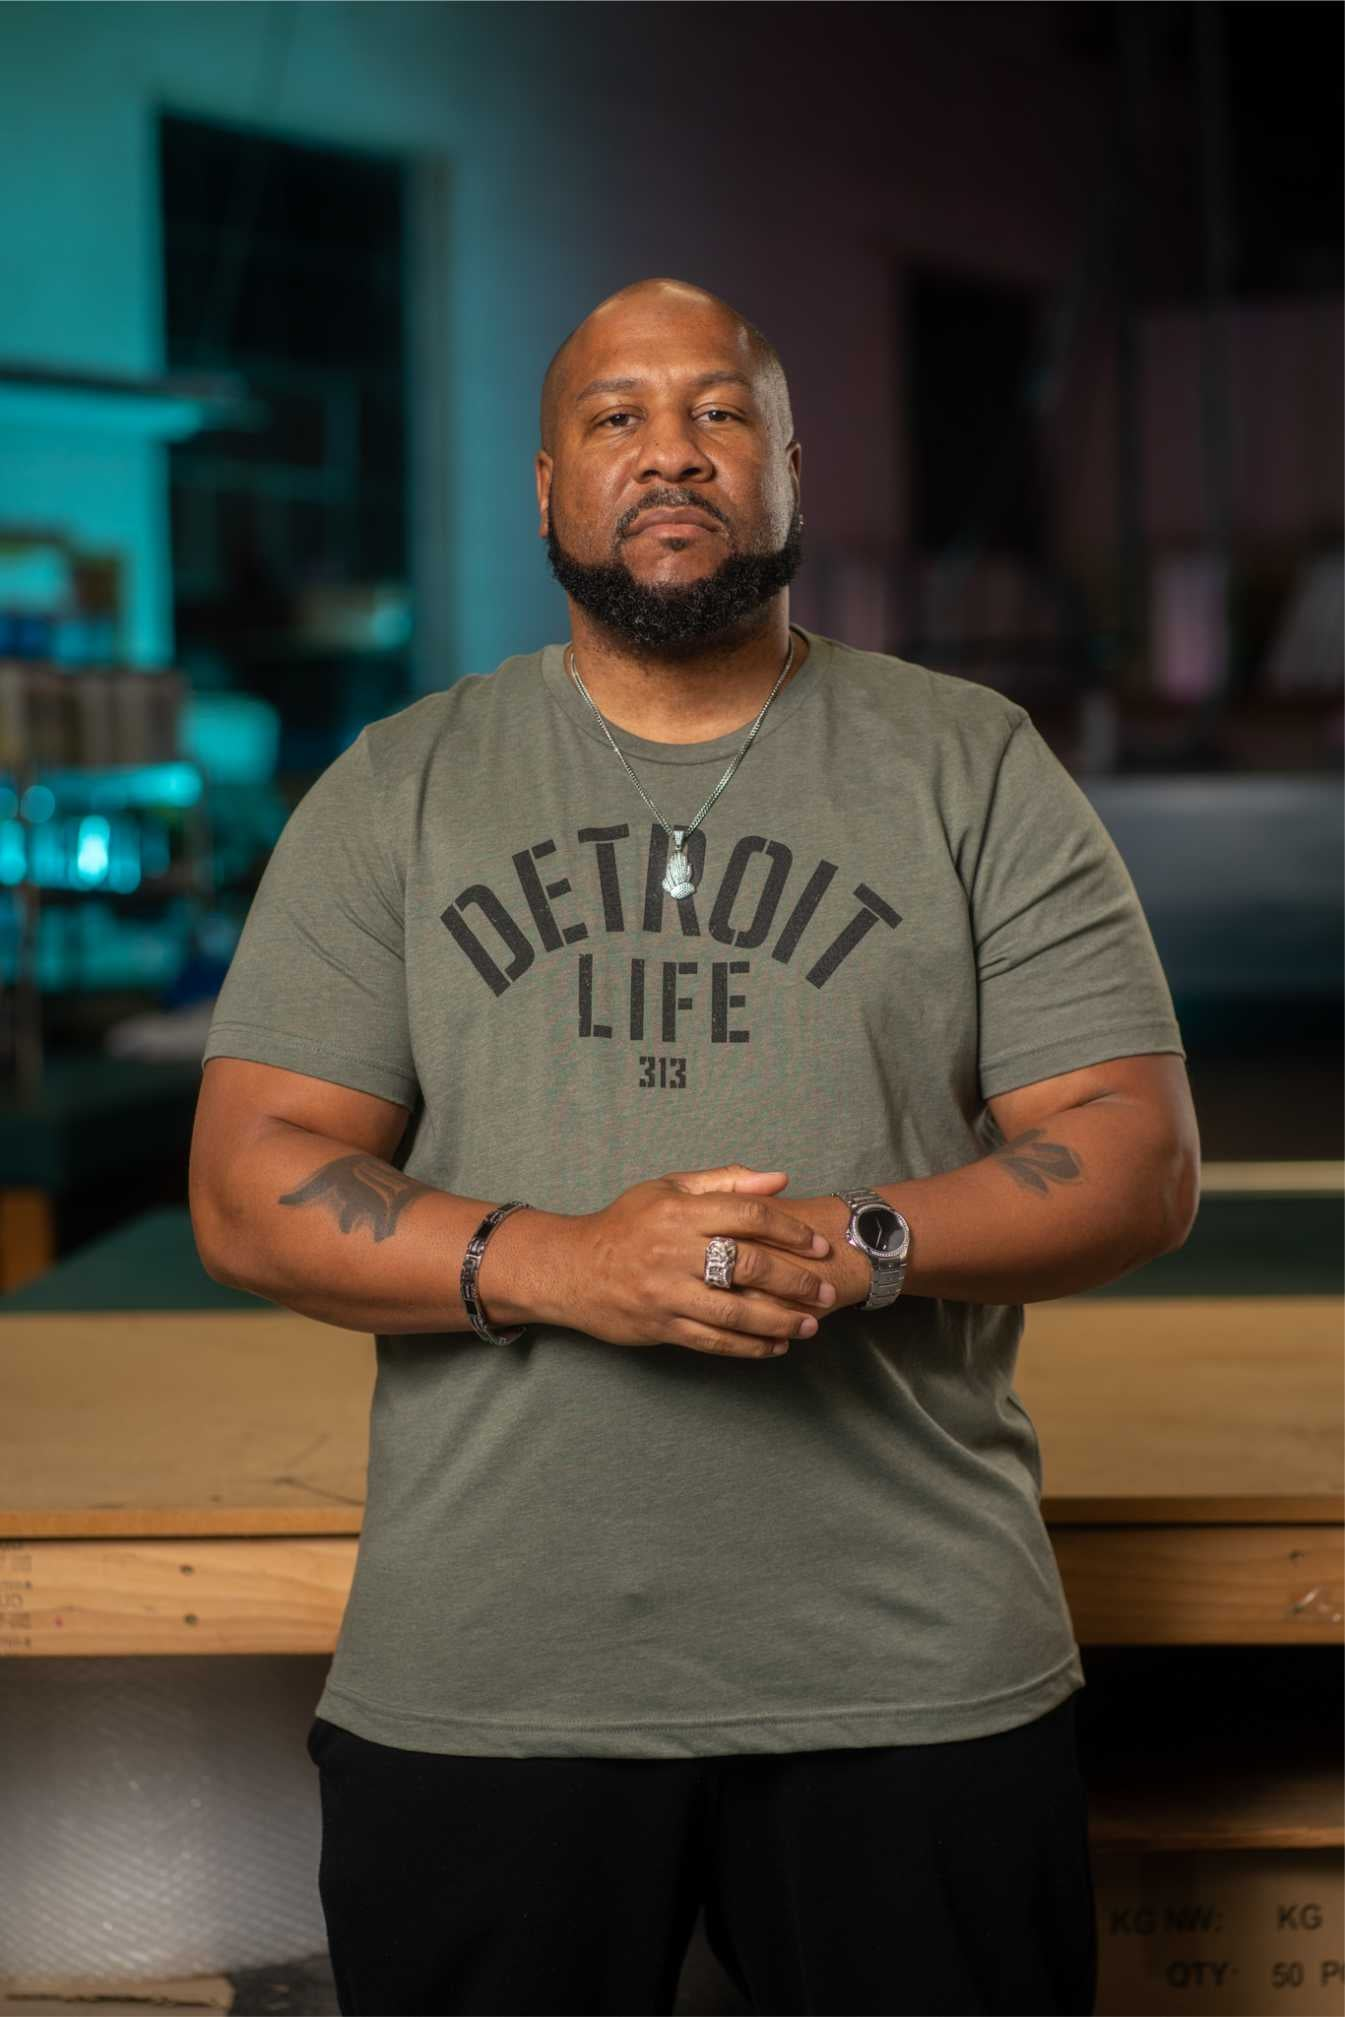 DETROIT LIFE ARMY T SHIRT